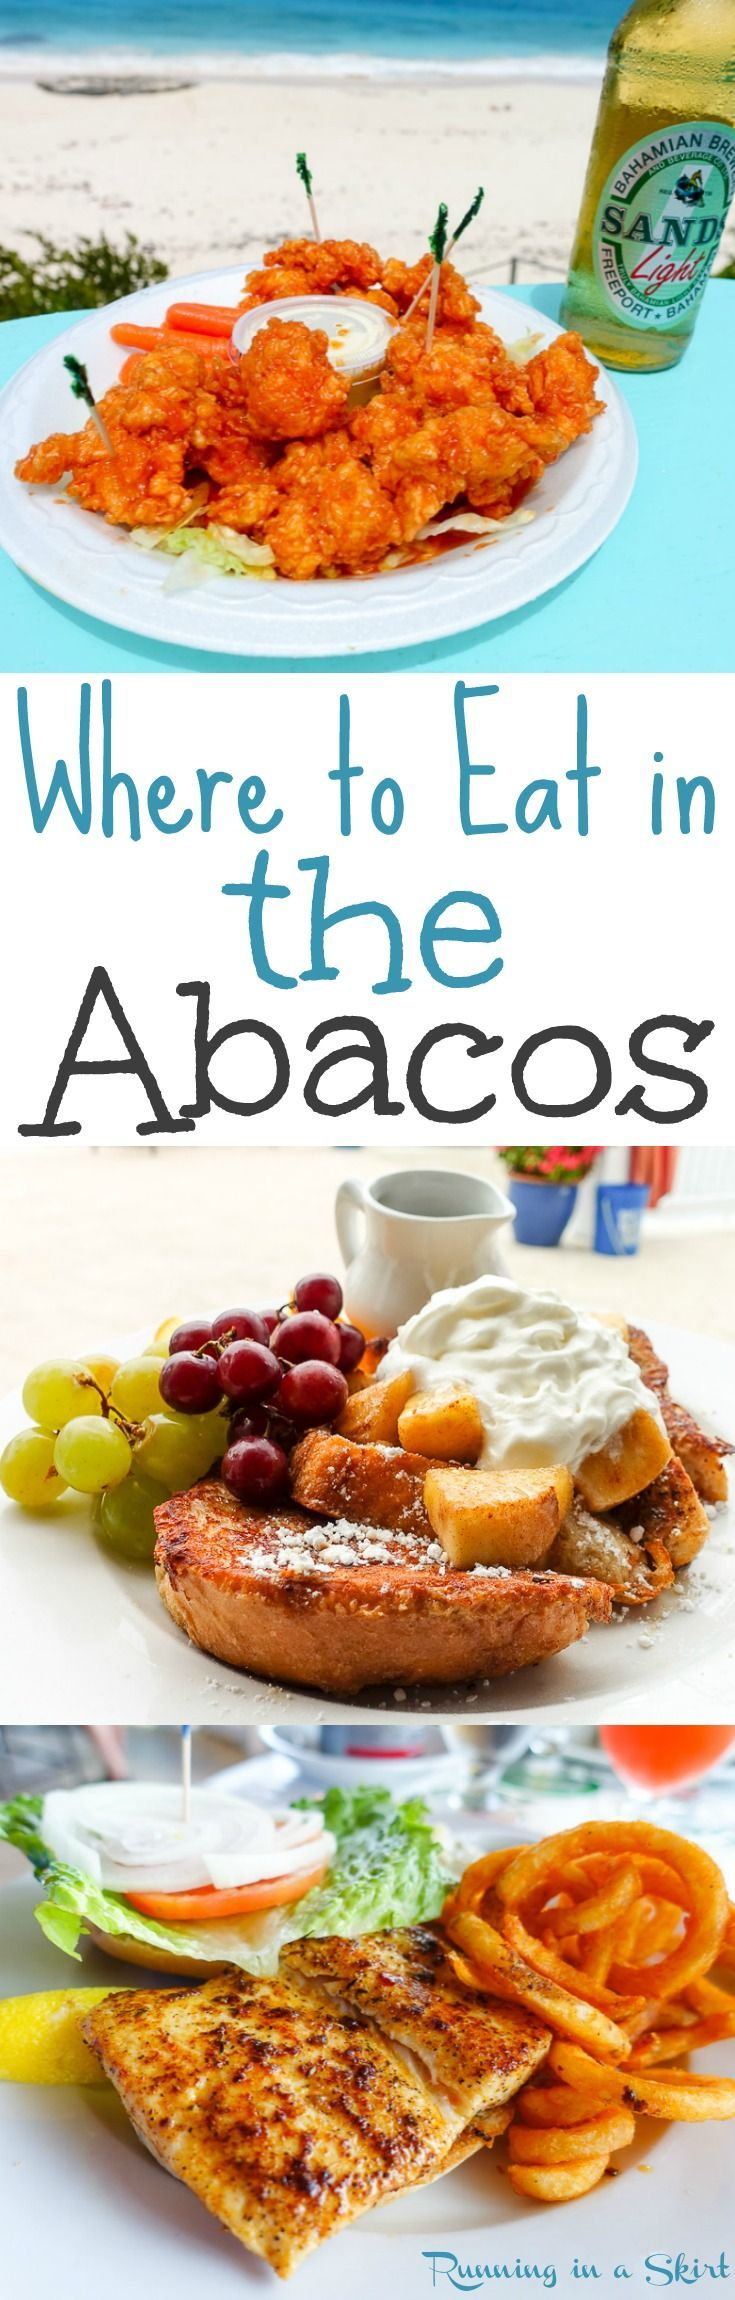 Where to Eat in the Abacos!  The best restaurants, roadside stands and dive bars in the Abaco in the Bahamas.  Great picks on the islands including lots of beach views... including Hope Town/ Elbow Cay, Marsh Harbor, Treasure Cay, Man o War Cay, Great Guana Cay, Little Harbor and Lubbers Quarters.  Including Pete's Pub, Nippers and Firefly Sunset Resort. / Running in a Skirt